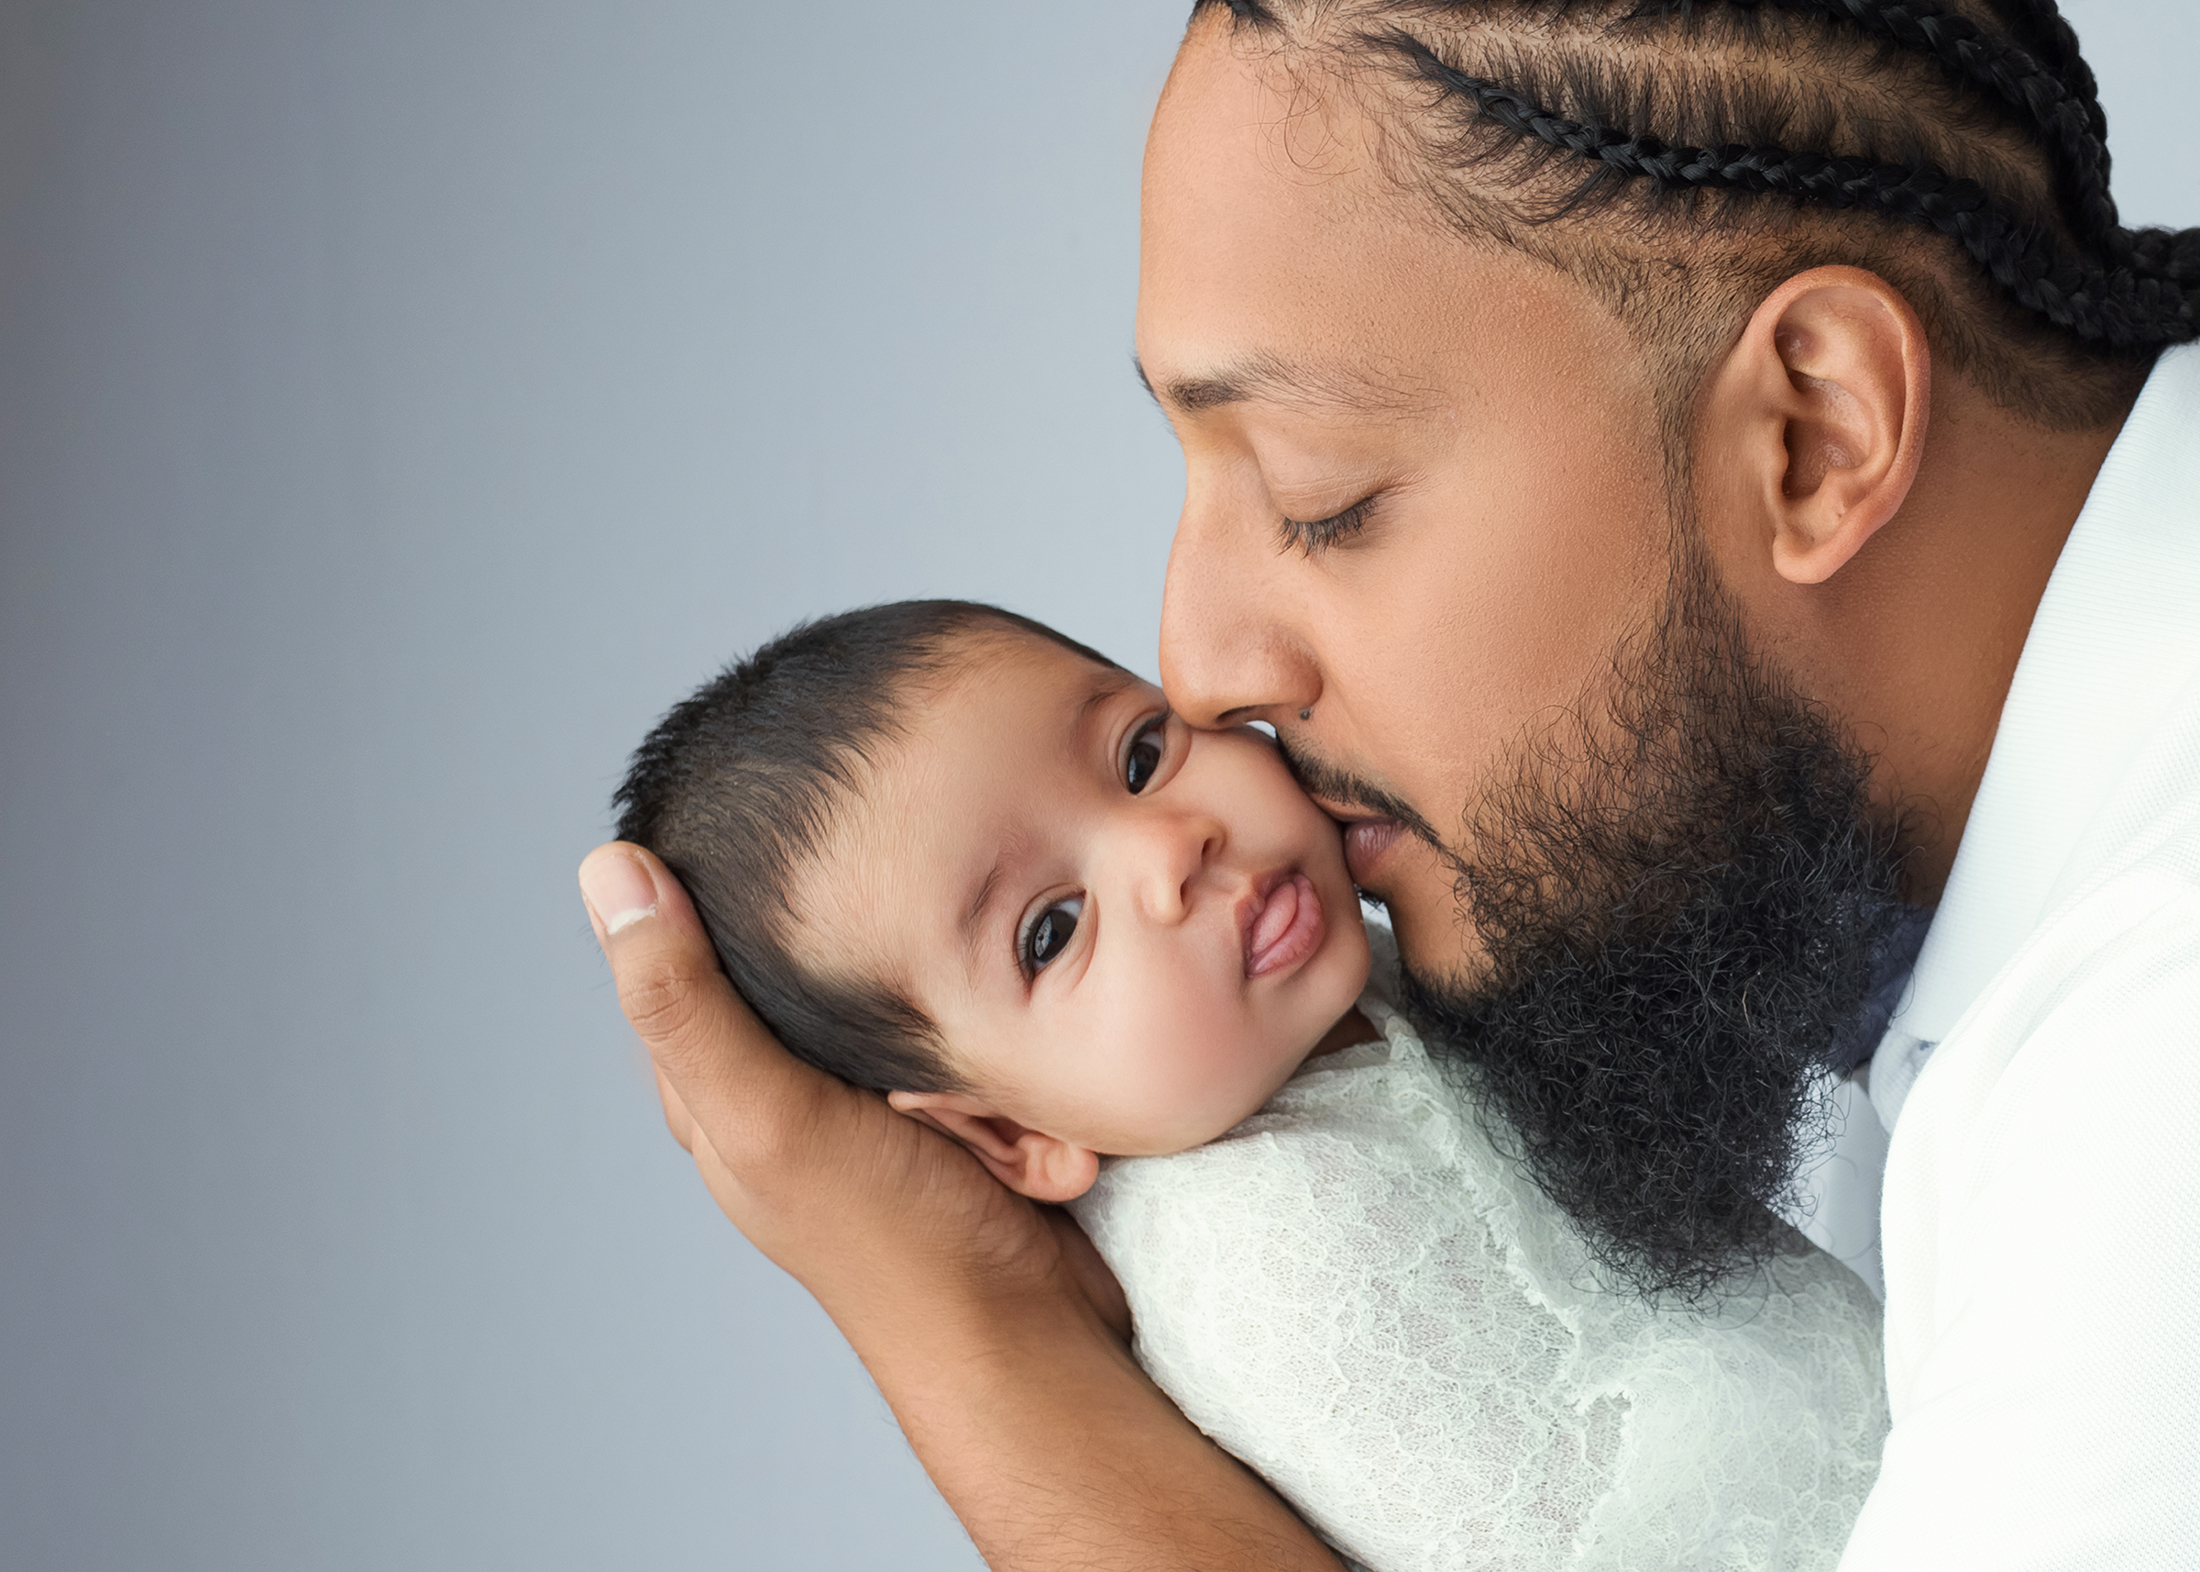 Daddy and baby photography